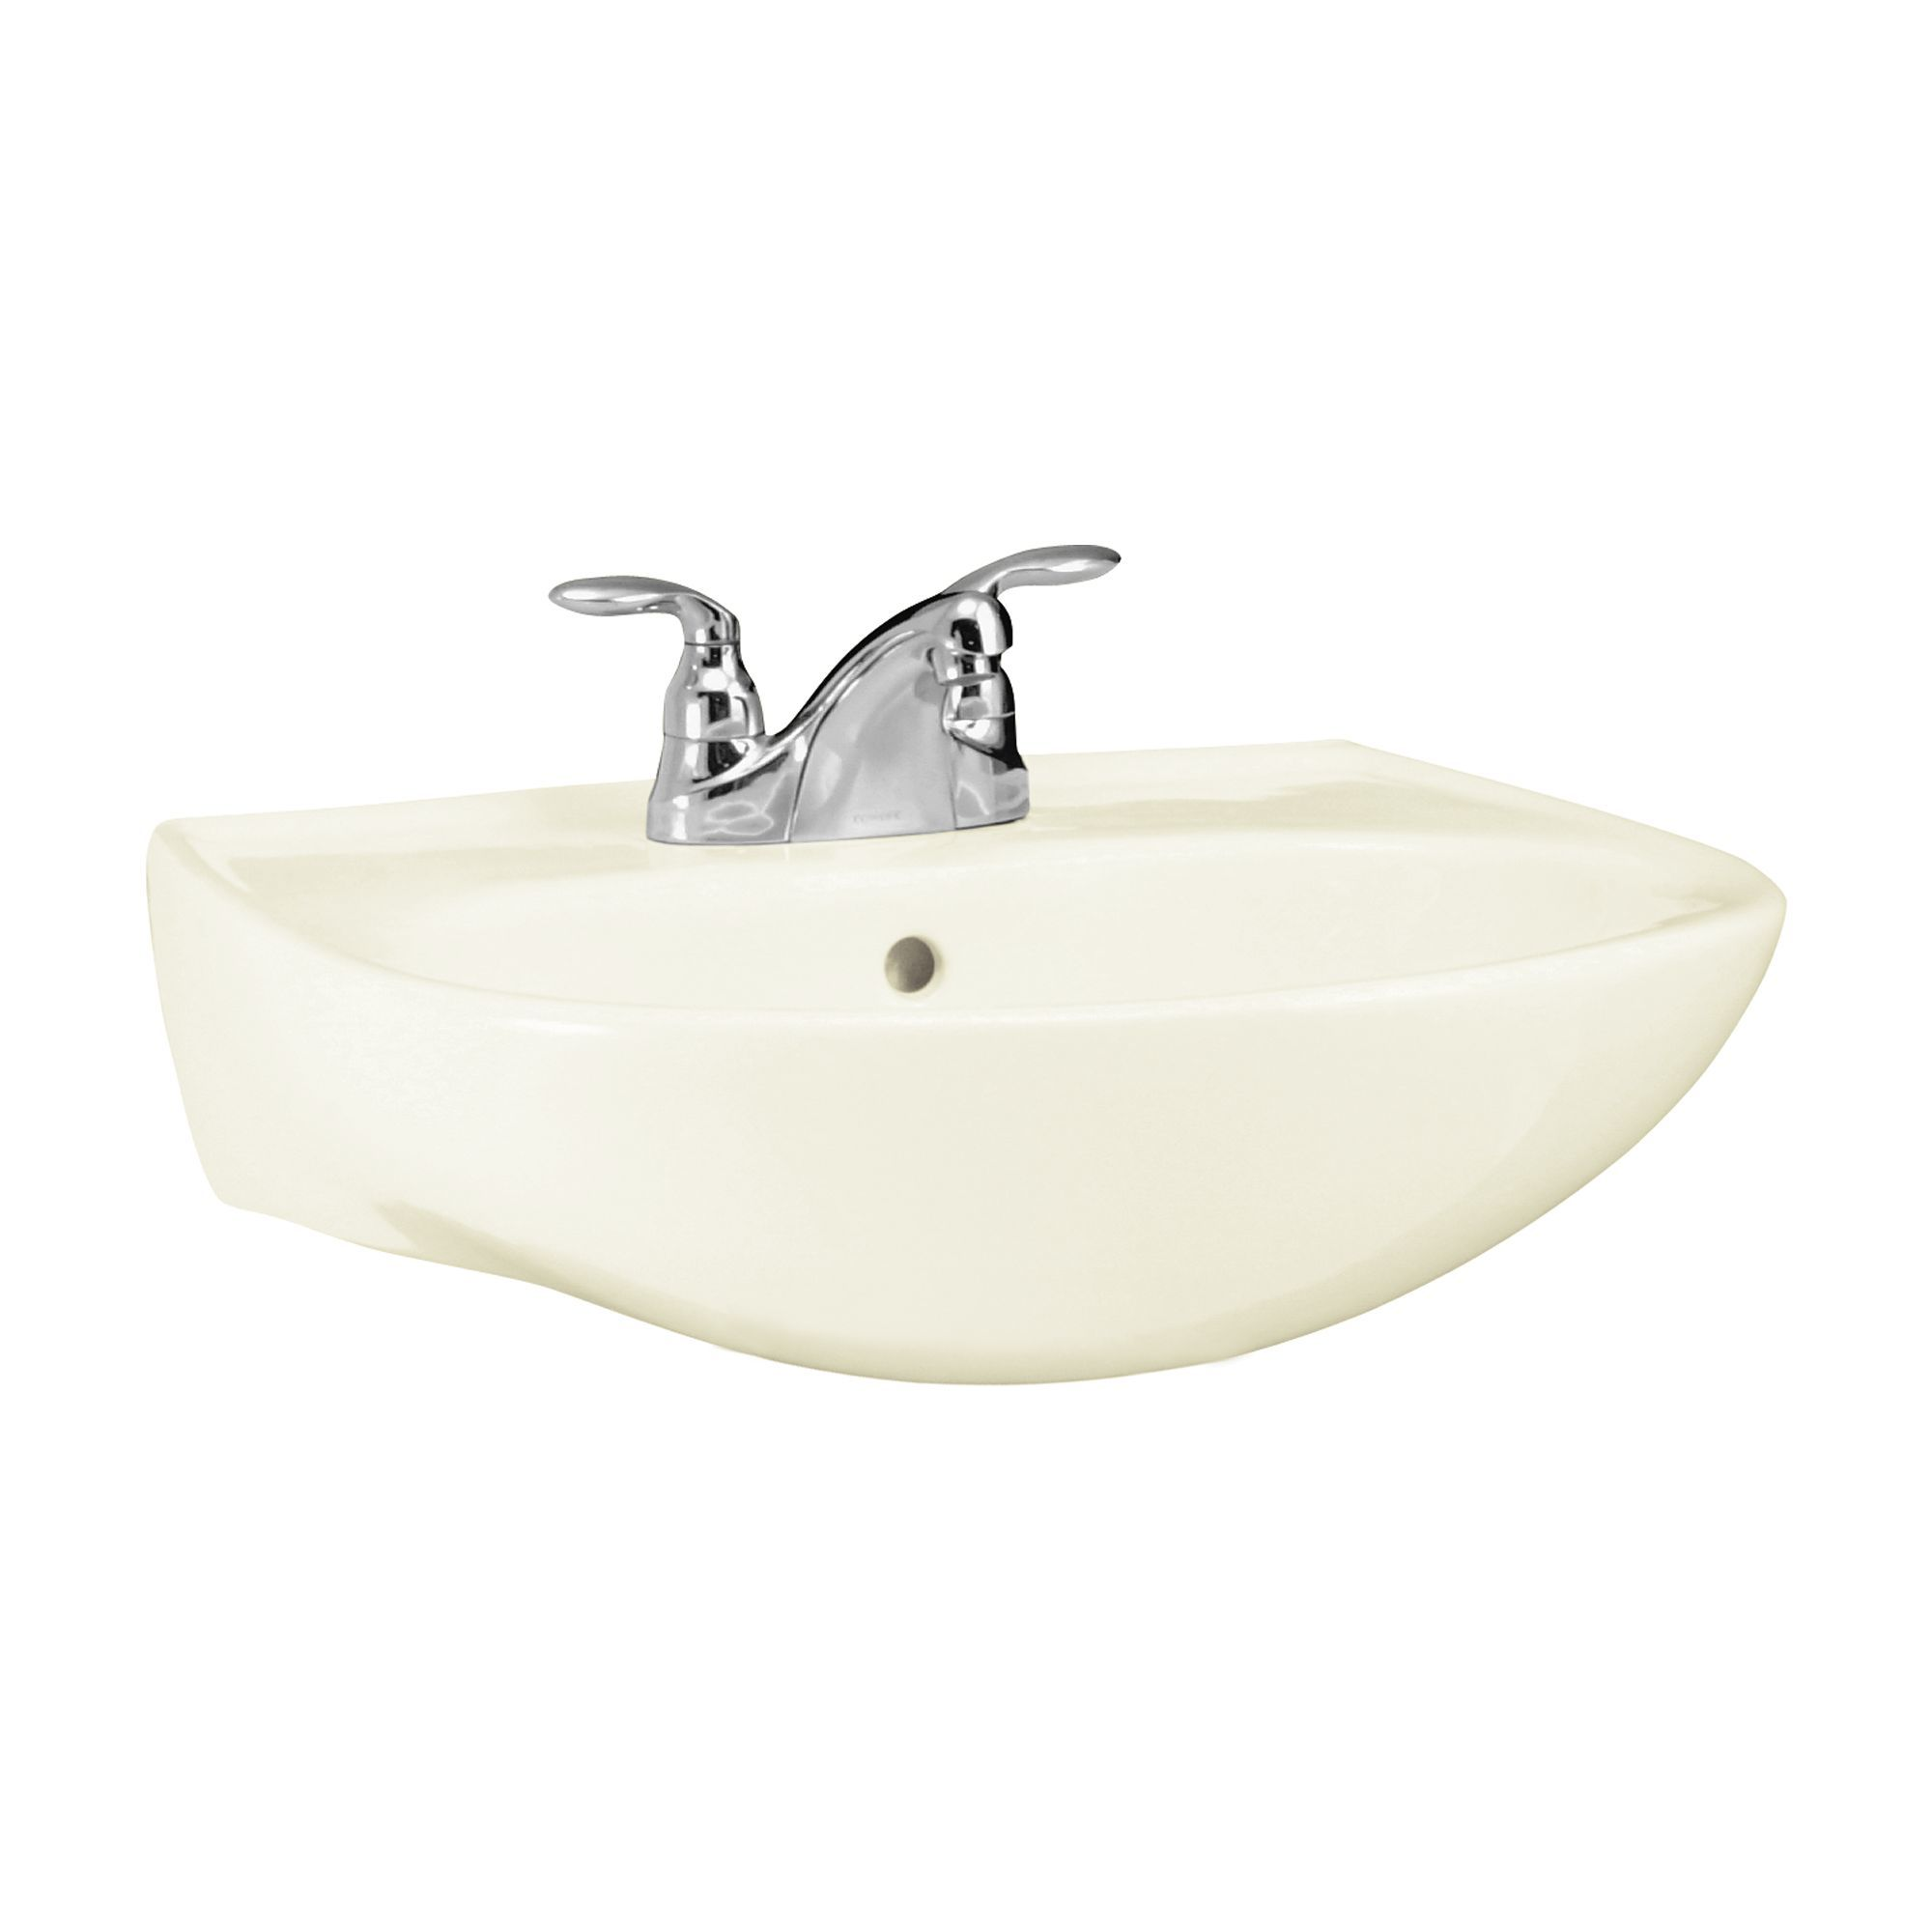 Sterling 446124 0 White Sacramento 21 1 4 Pedestal Bathroom Sink With Three Holes Drilled And Overflow Faucet